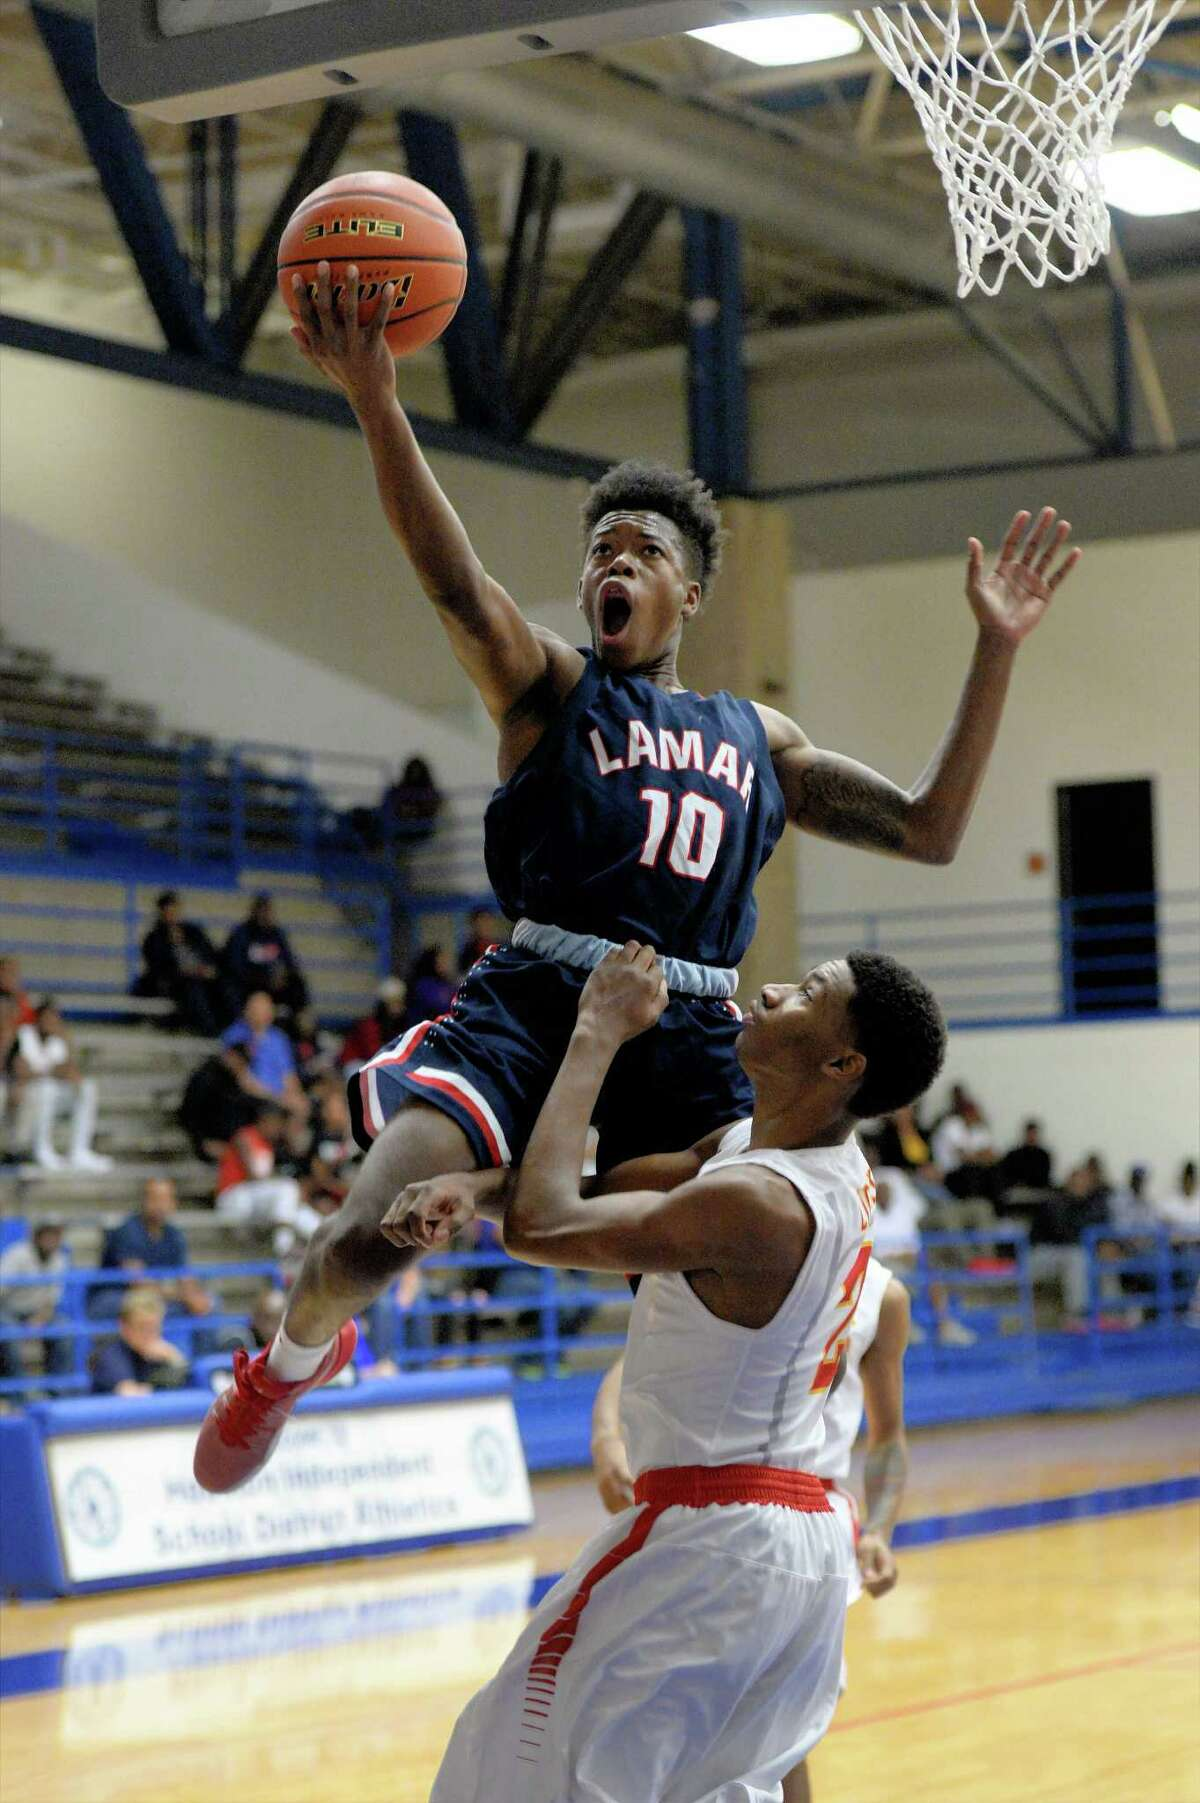 David Shepard (10) of Lamar drives to the hoop during the first half of a boys basketball game between the Lamar Texans and the Yates Lions at the Houston ISD Tournament on Saturday December 17, 2016 at The Pavilion, Houston, TX.